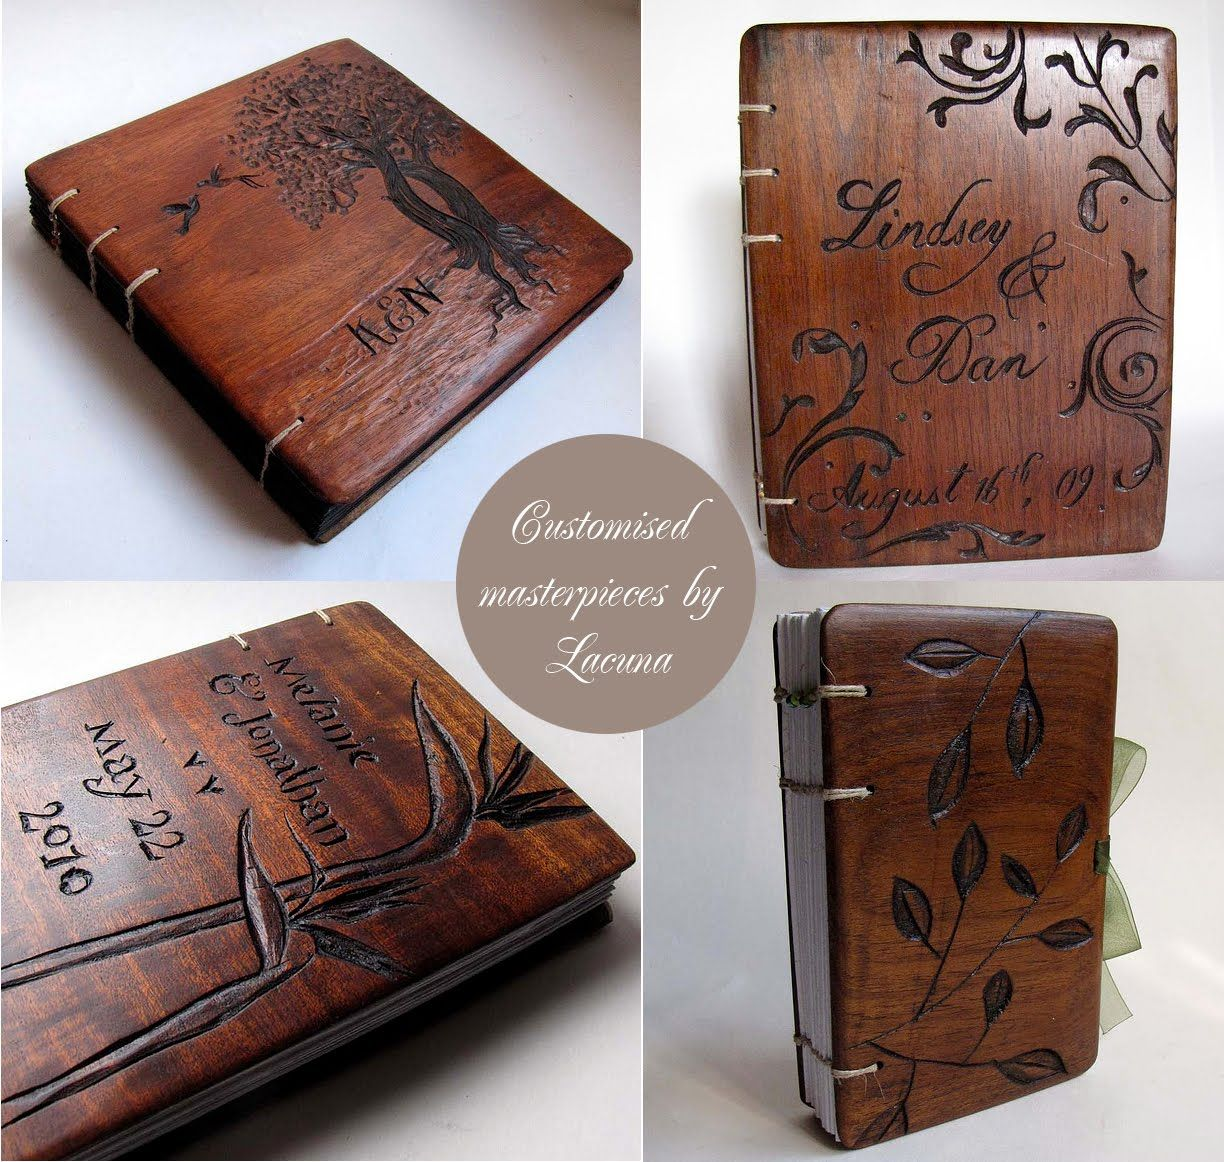 How To Make A Homemade Book Cover : Wooden book covers by lacuna works diy idea pinterest